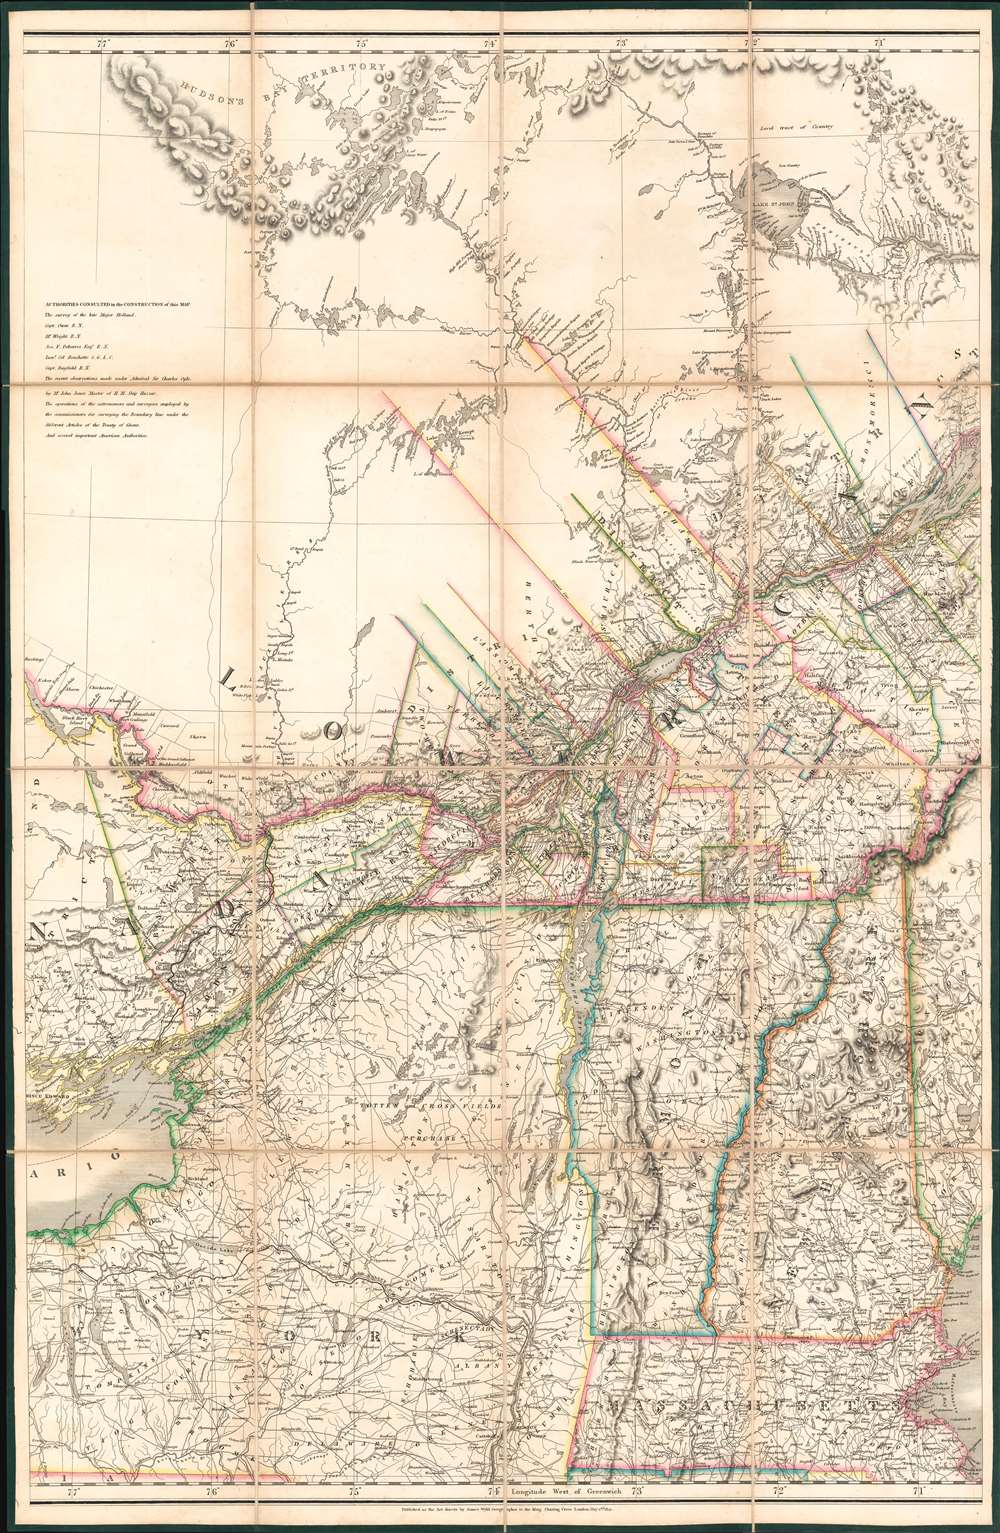 To His Most Excellent Majesty King William IVth This Map of the Provinces of Lower and Upper Canada, Nova Scotia, New Brunswick, Newfoundland and Prince Edwards Island, with a Large Section of the United States... - Alternate View 3